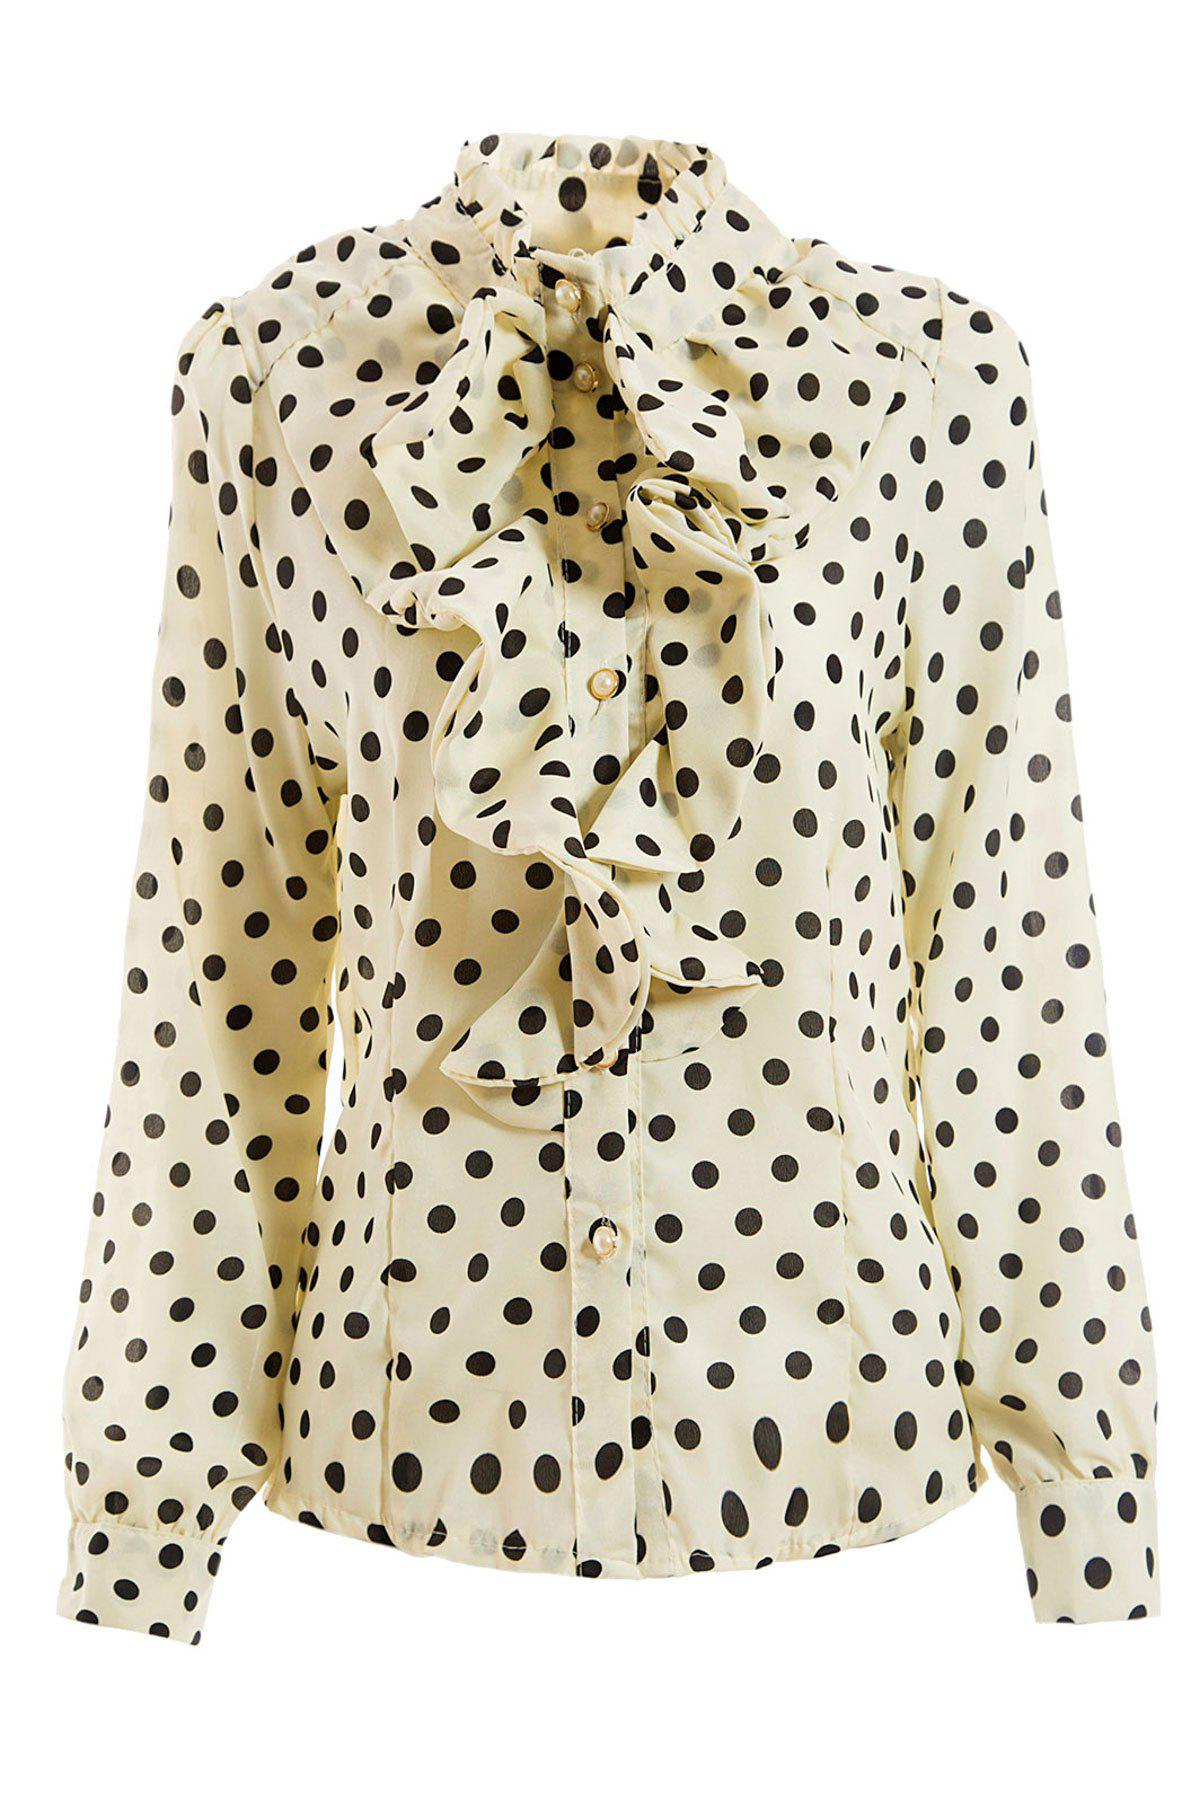 Elegant Style Stand Collar Polka Dot Flouncing Embellished Long Sleeve Chiffon Women's Shirt